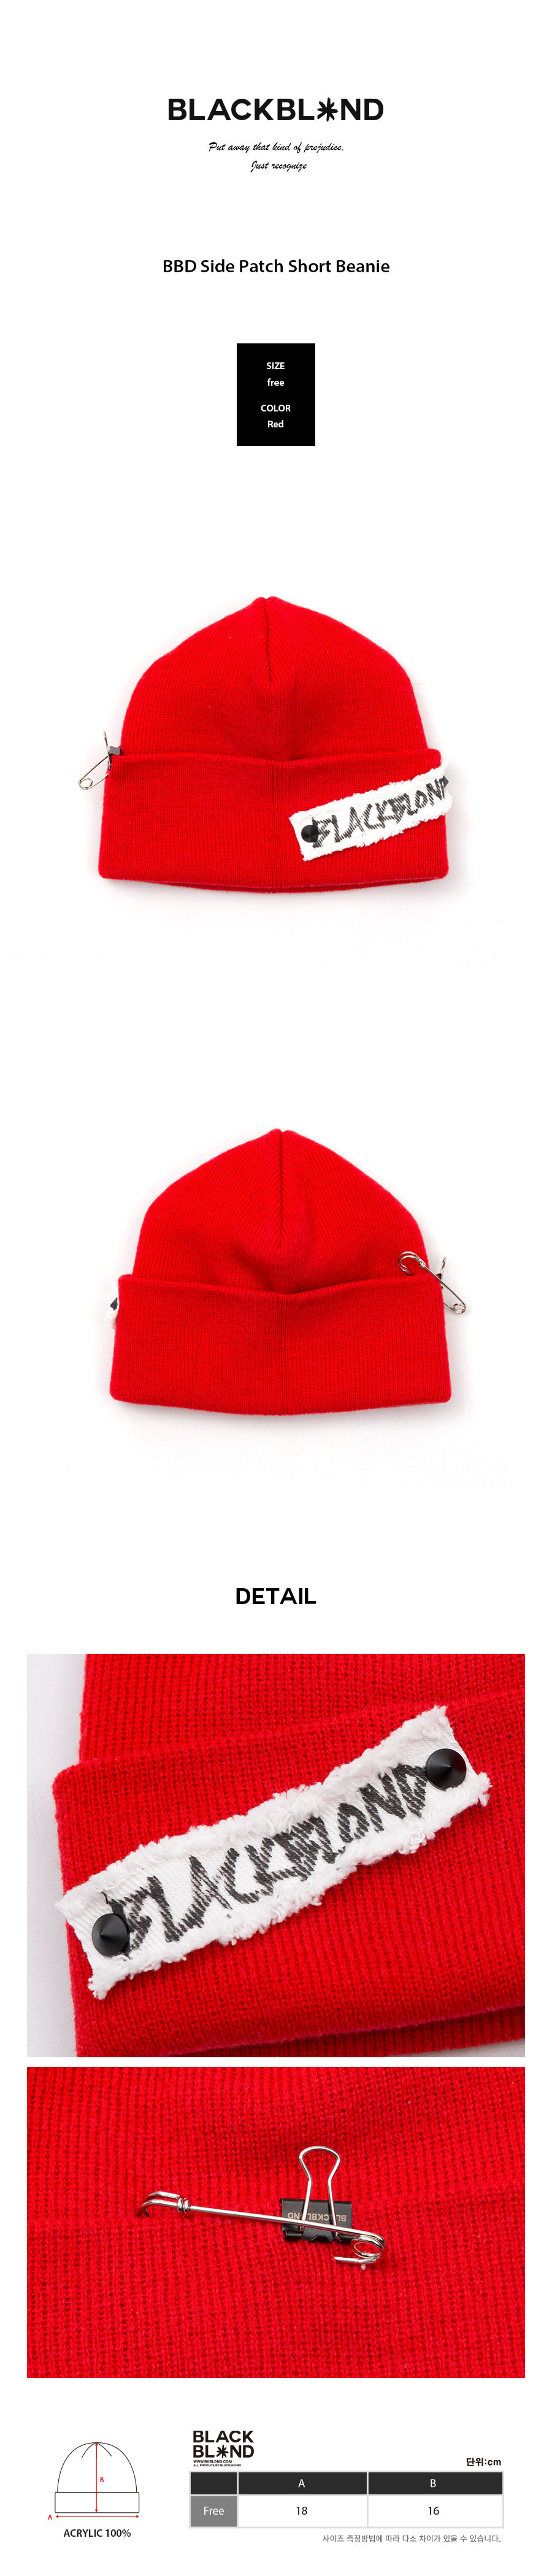 블랙블론드 BLACKBLOND - BBD Side Patch Short Beanie (Red)